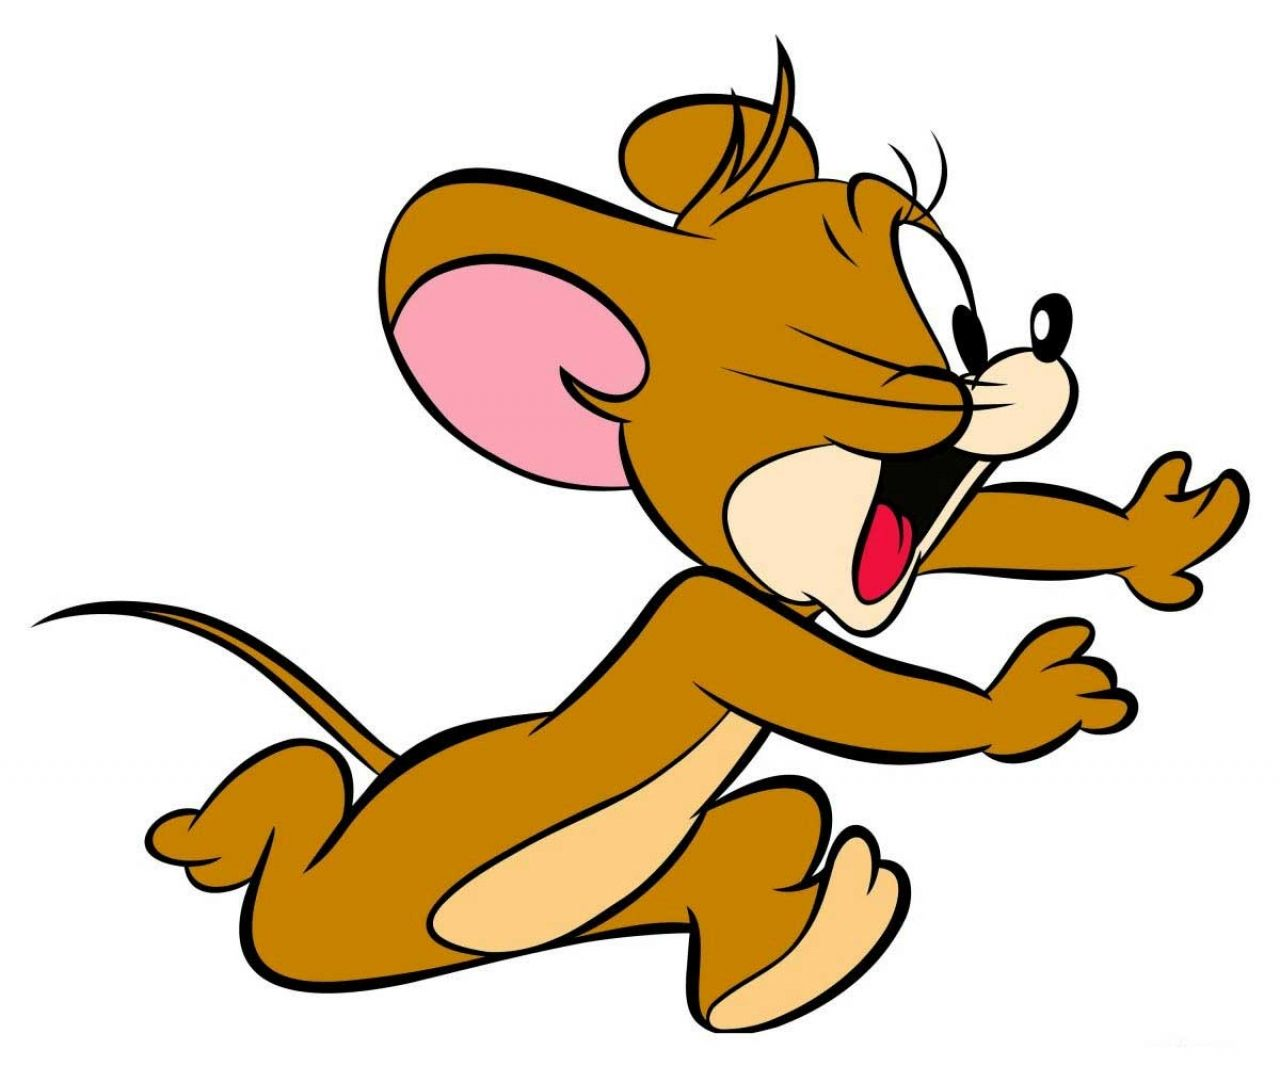 Cartoon wallpapers jerry the mouse running and shouting.